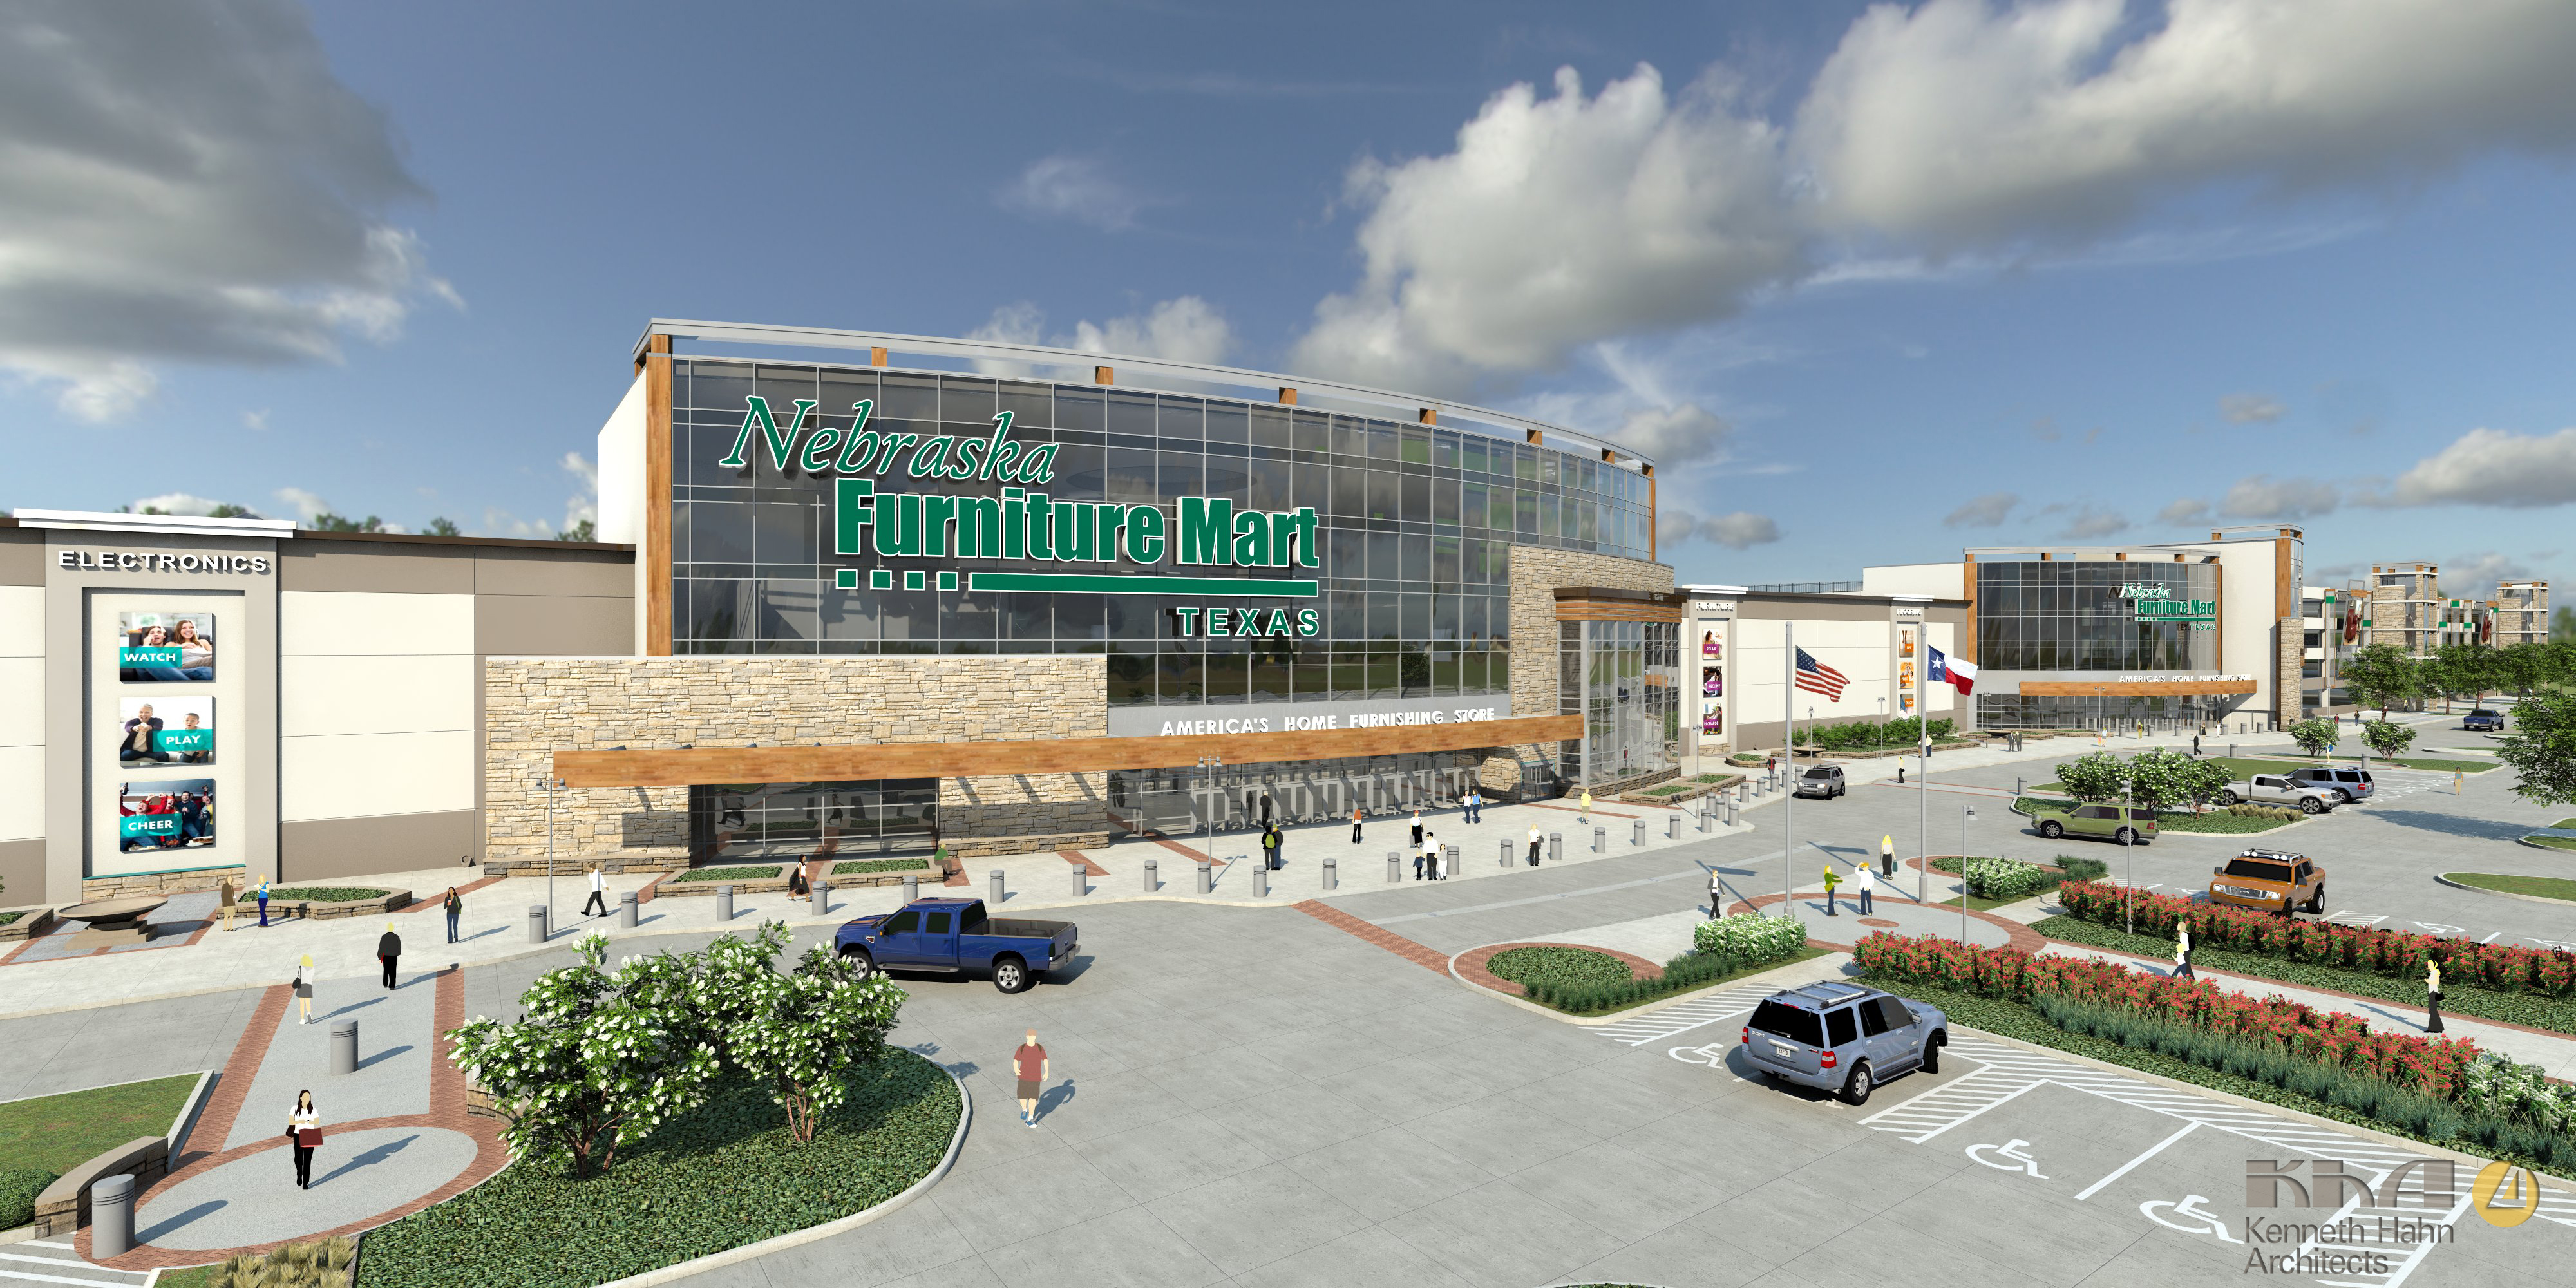 Genial Nebraska Furniture Mart (The Colony, Texas)